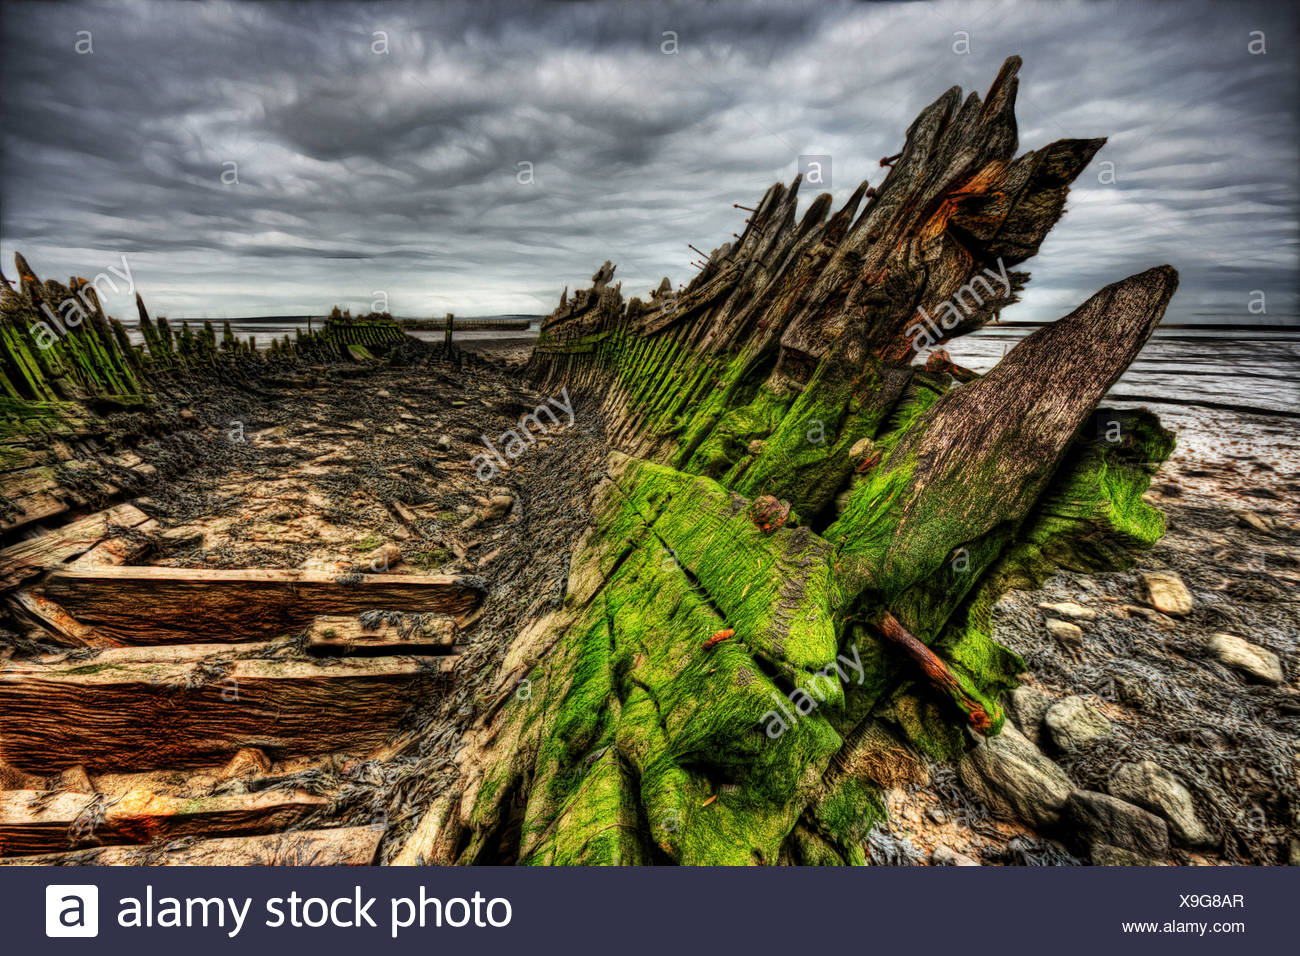 Green algea build up and rotting wood and nails on an old abandoned boat wreck beached in mud on the river swale - Stock Image